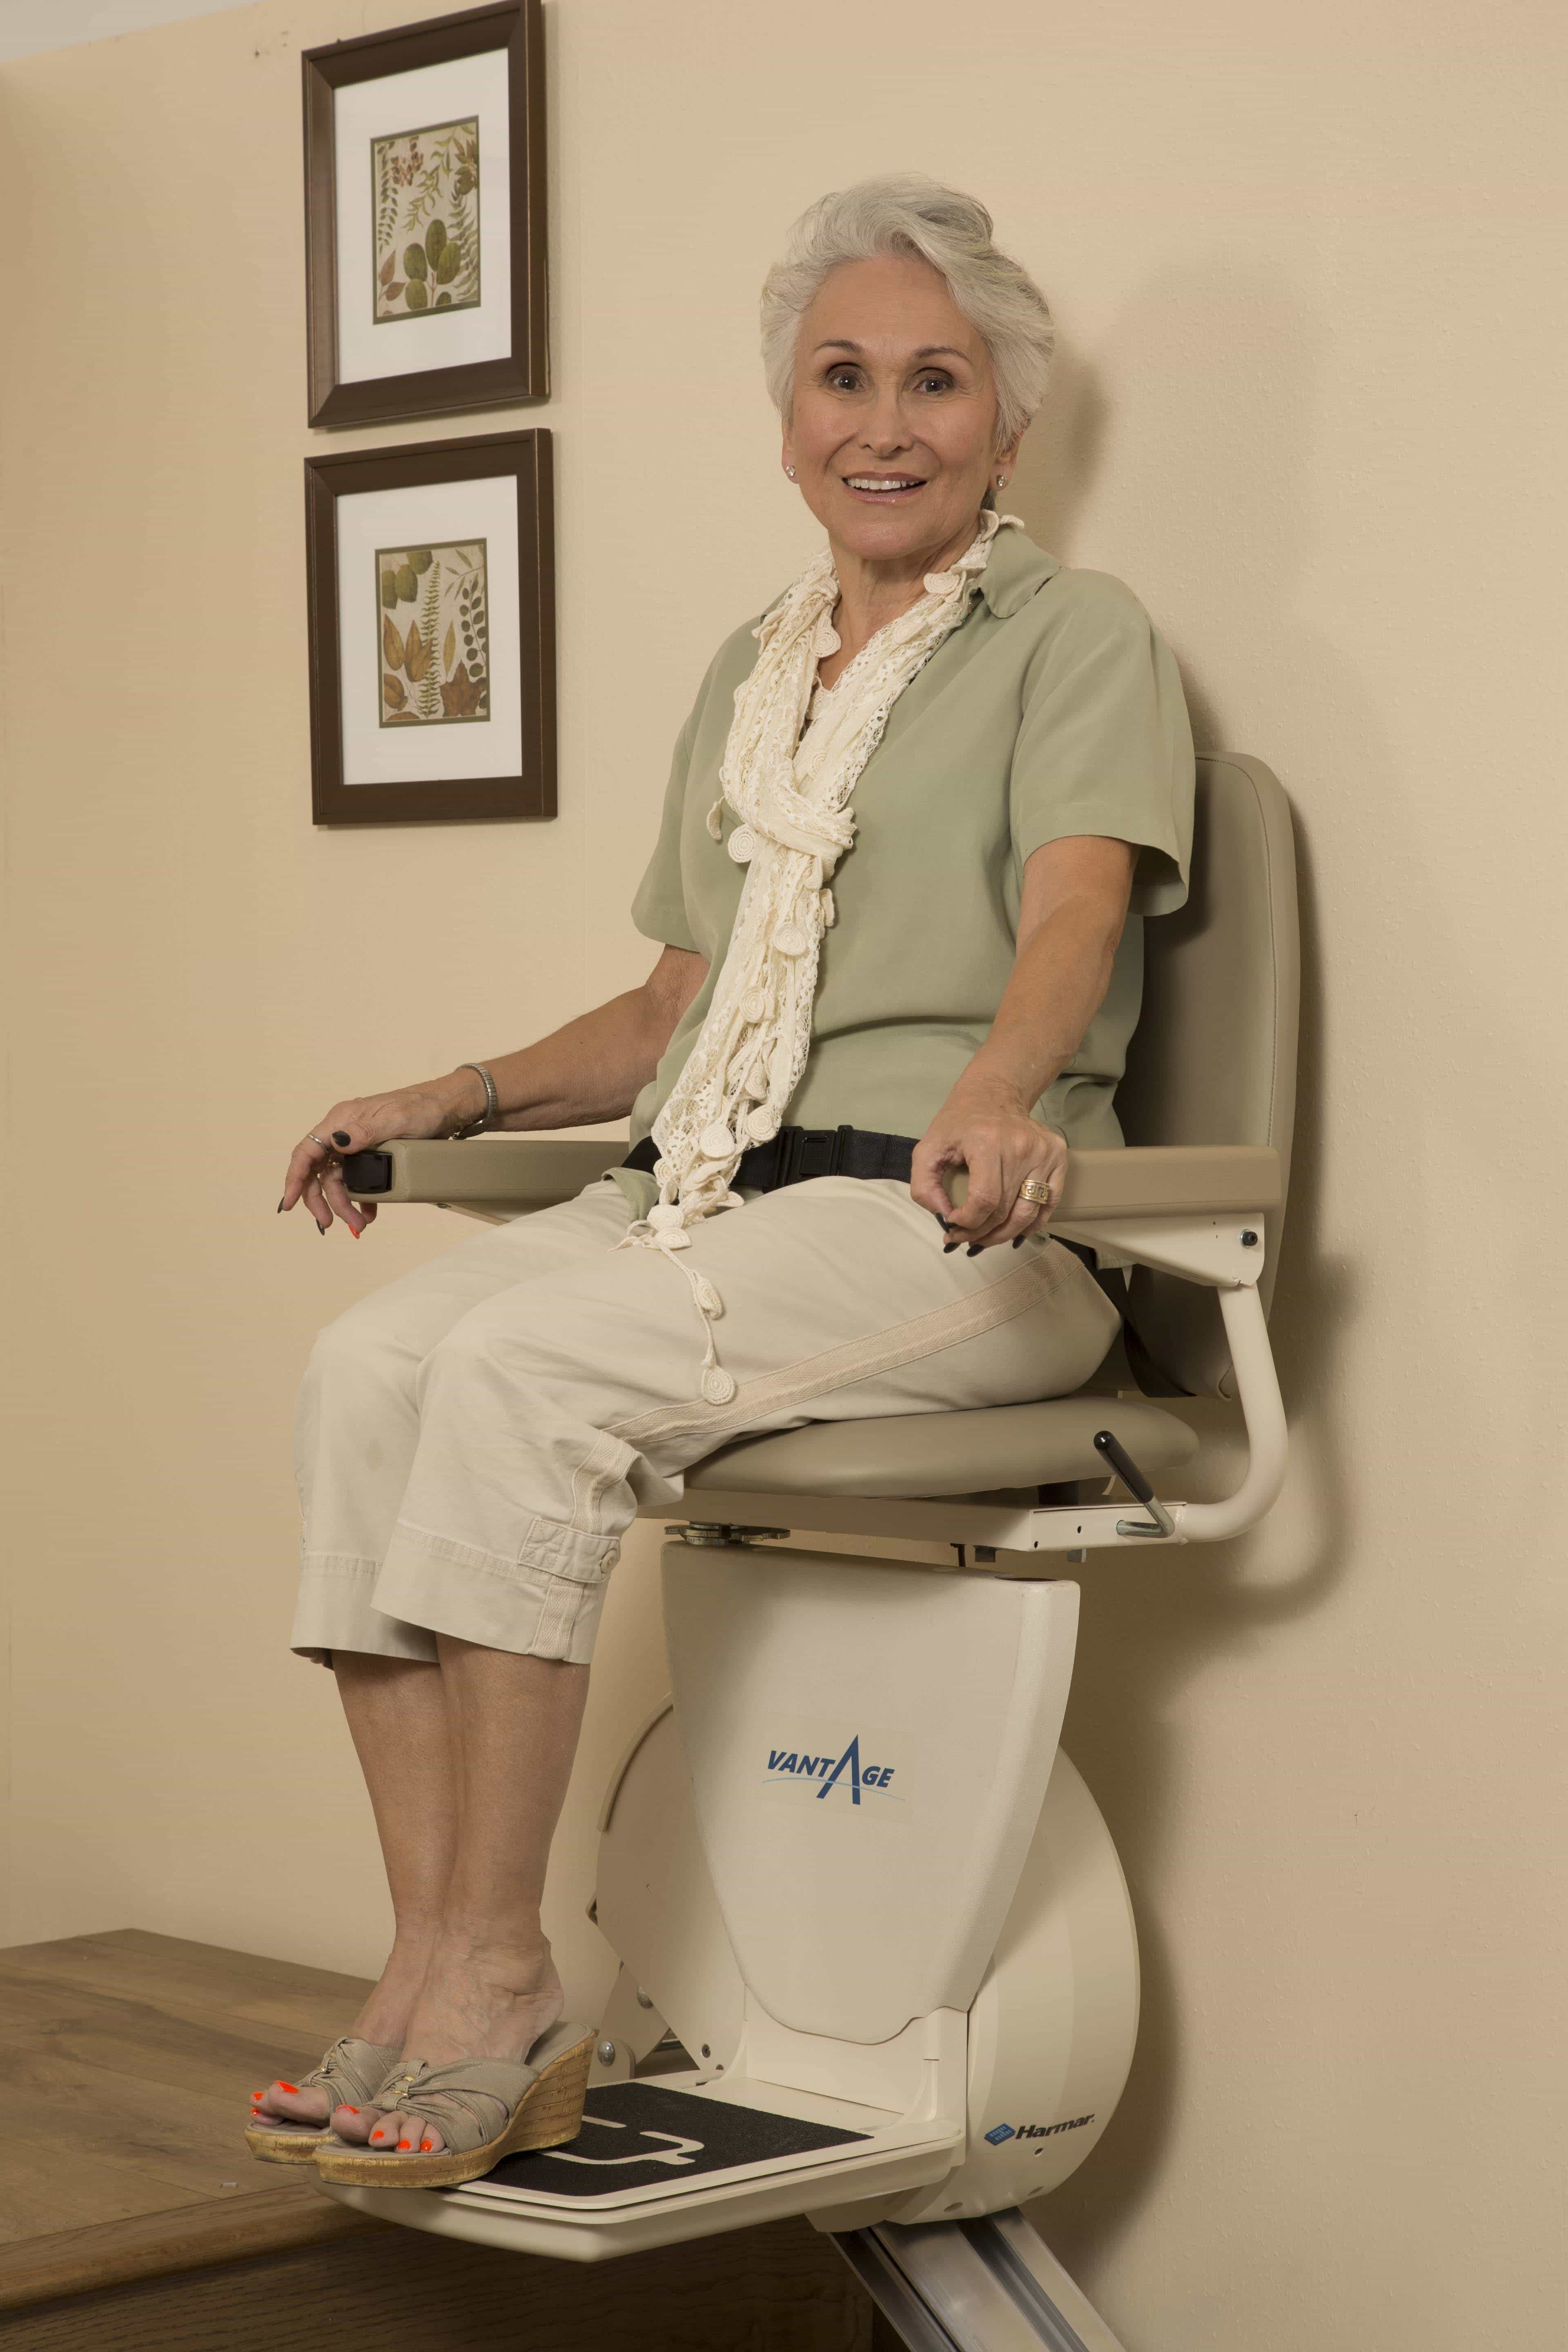 Handling life's turns with a stairlift